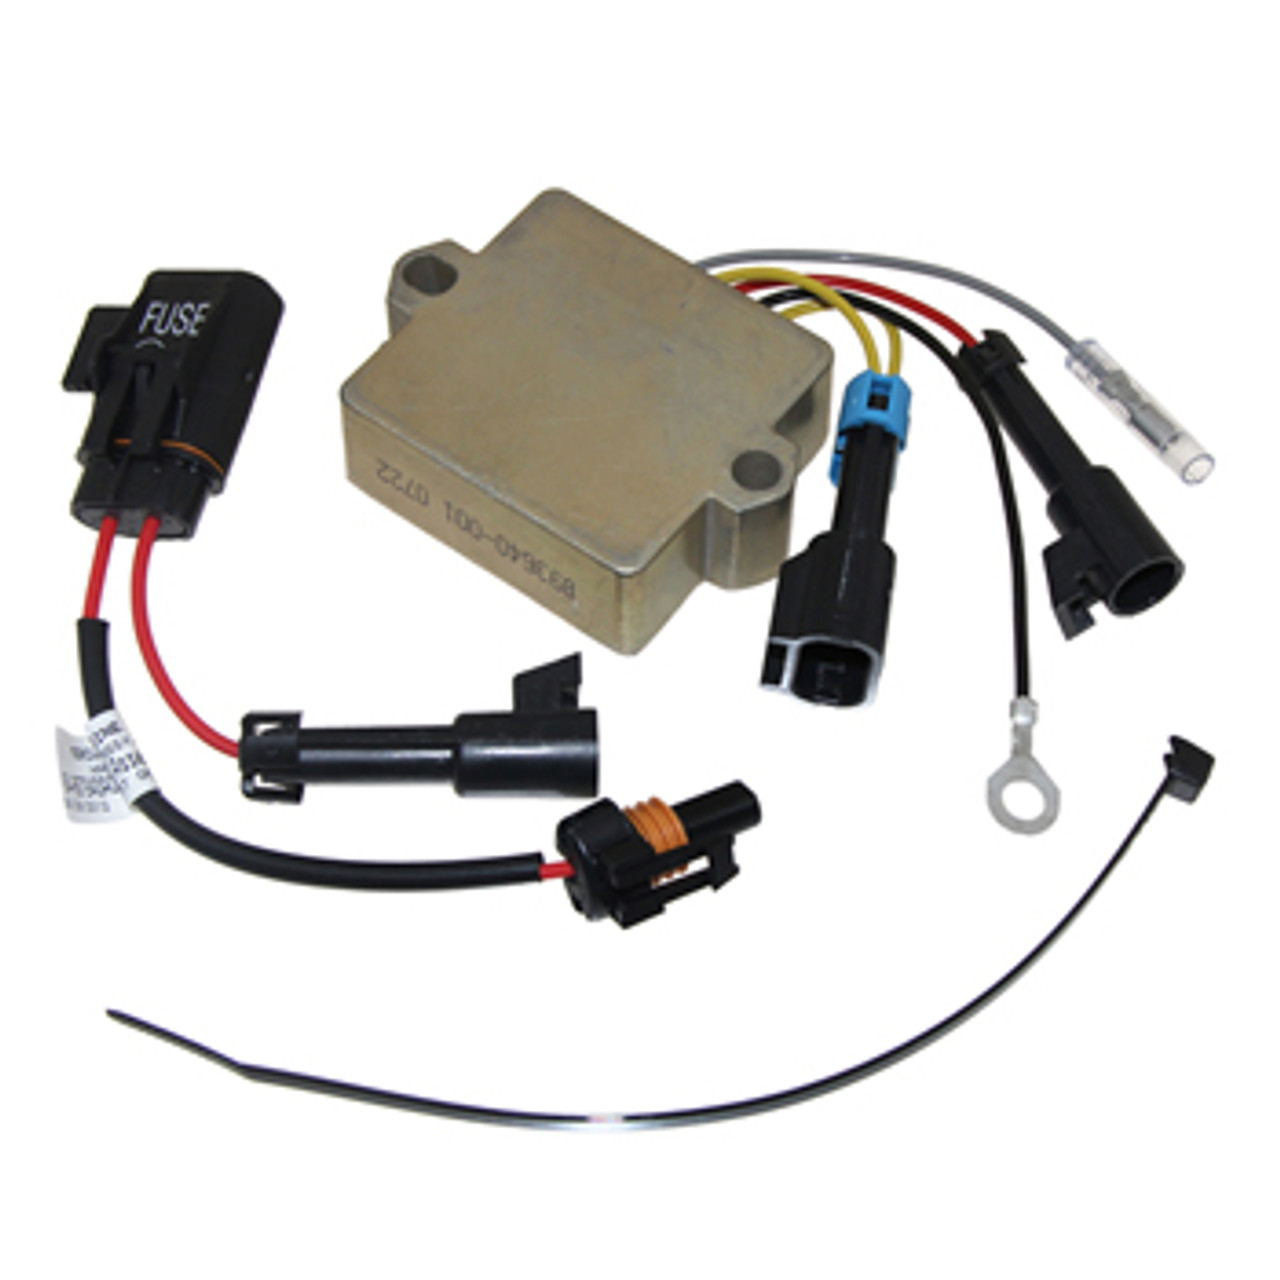 Mercury 3/4 Cylinder 25-60 HP 4-Stroke Voltage Regulator with Fuse Harness Replaces OEM # 893640A03